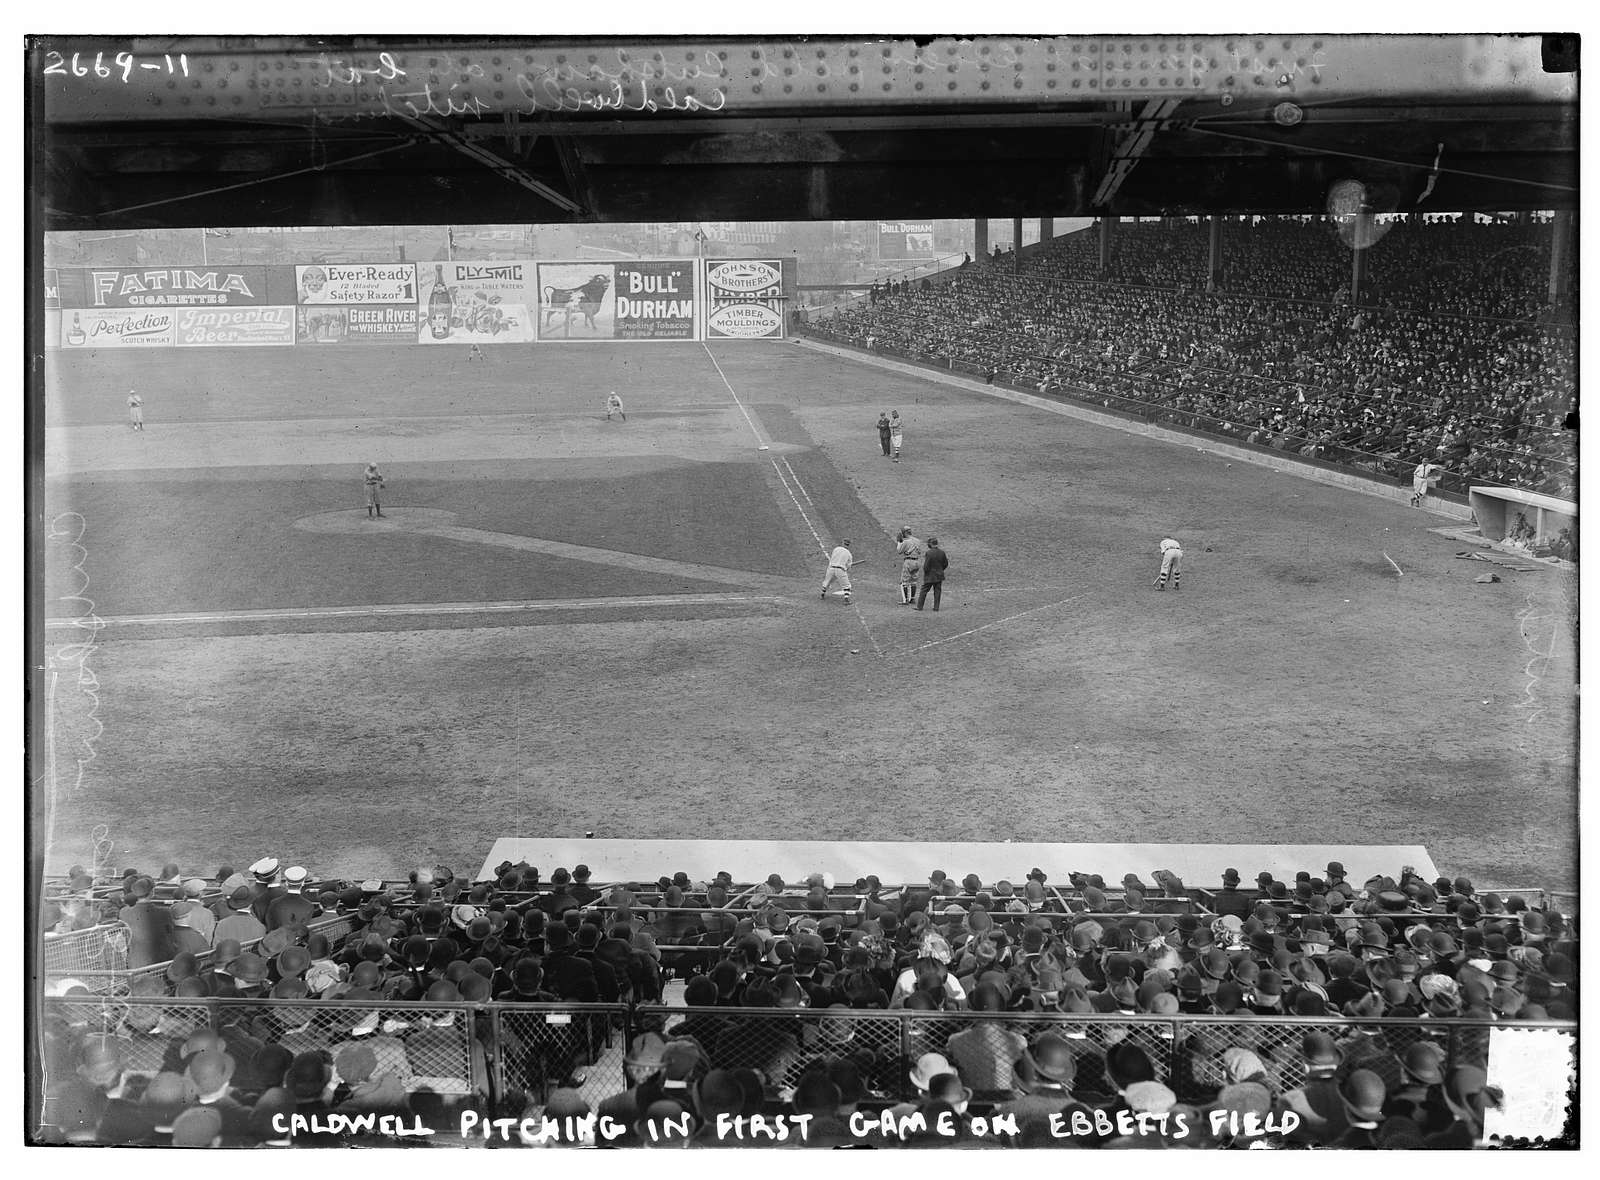 Ray Caldwell, New York AL, pitching in exhibition game which was the first game at Ebbets Field, April 5, 1913 (baseball)